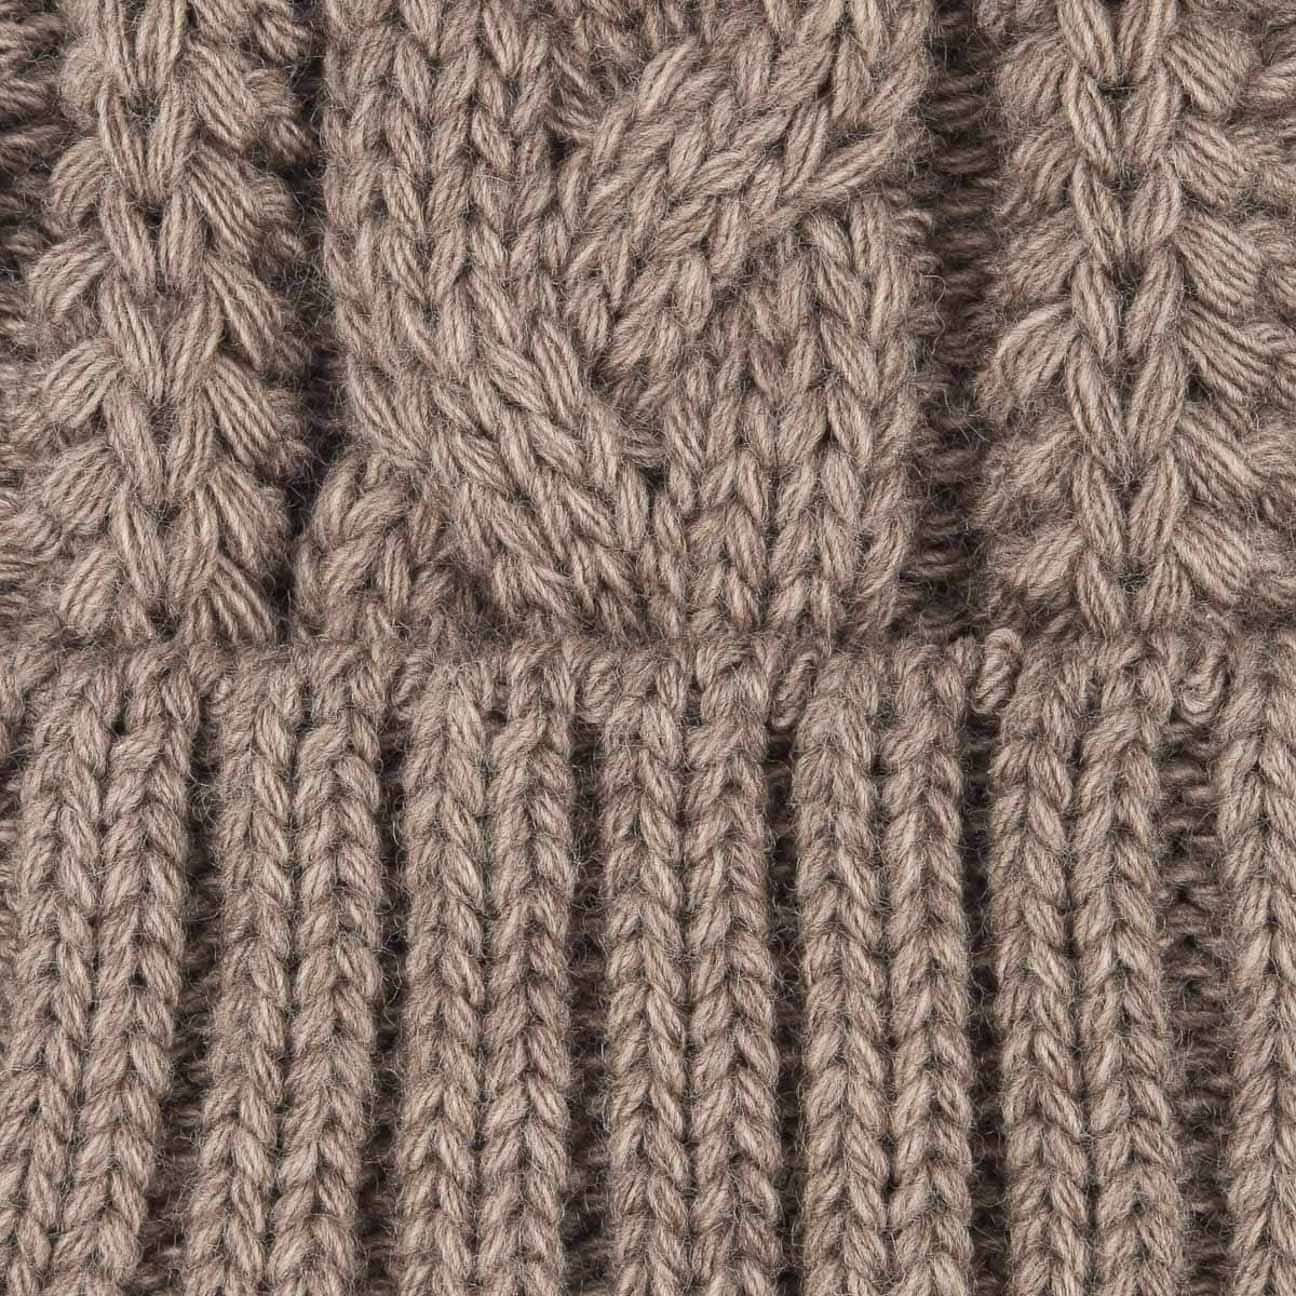 693a0f9637c ... Giant Bobble Hat by McBURN - camel 3 ...